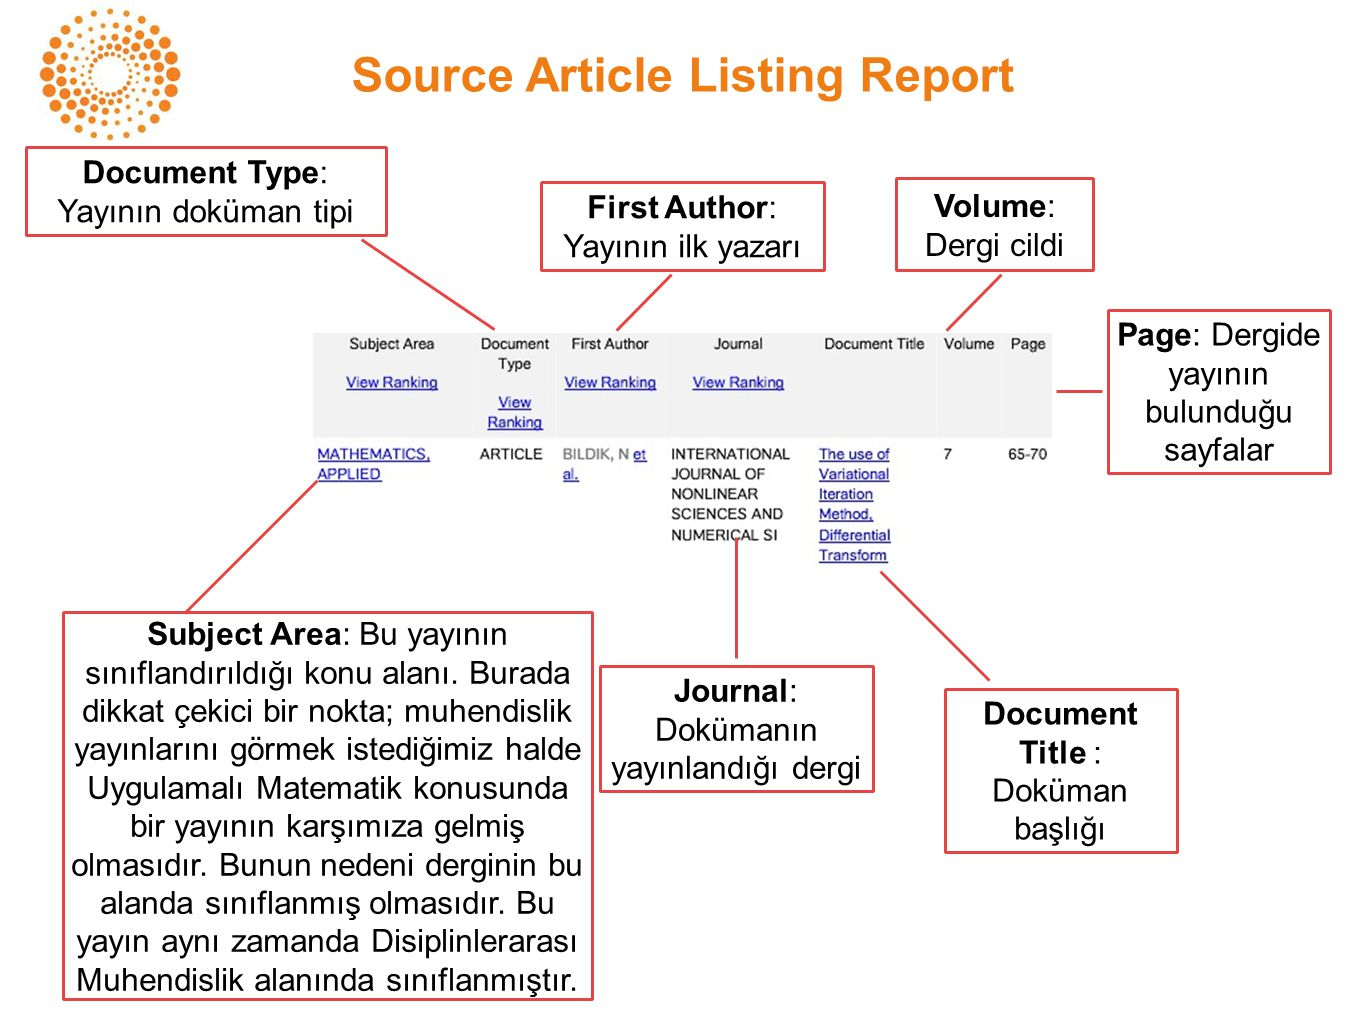 Source Article Listing Report